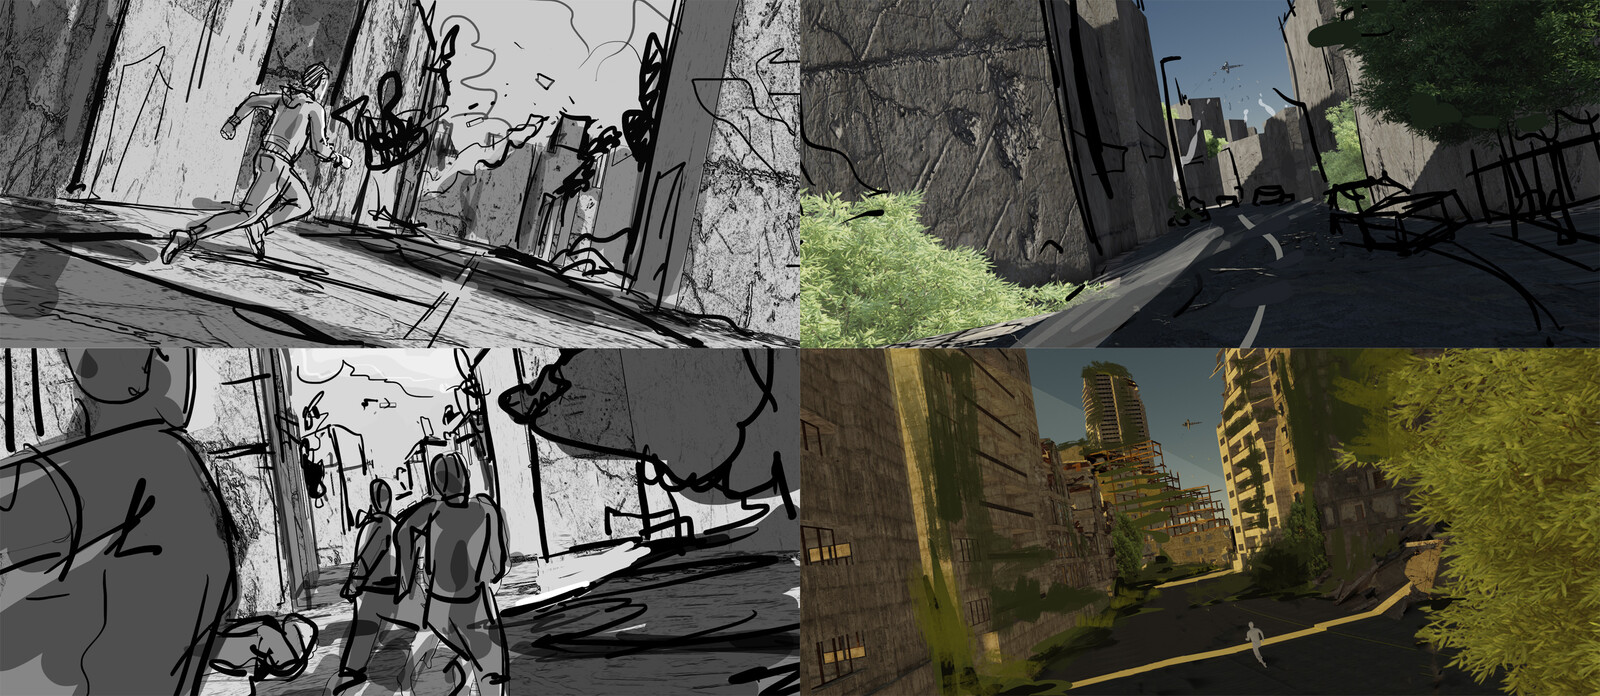 A bunch of sketches at various levels of scrappiness